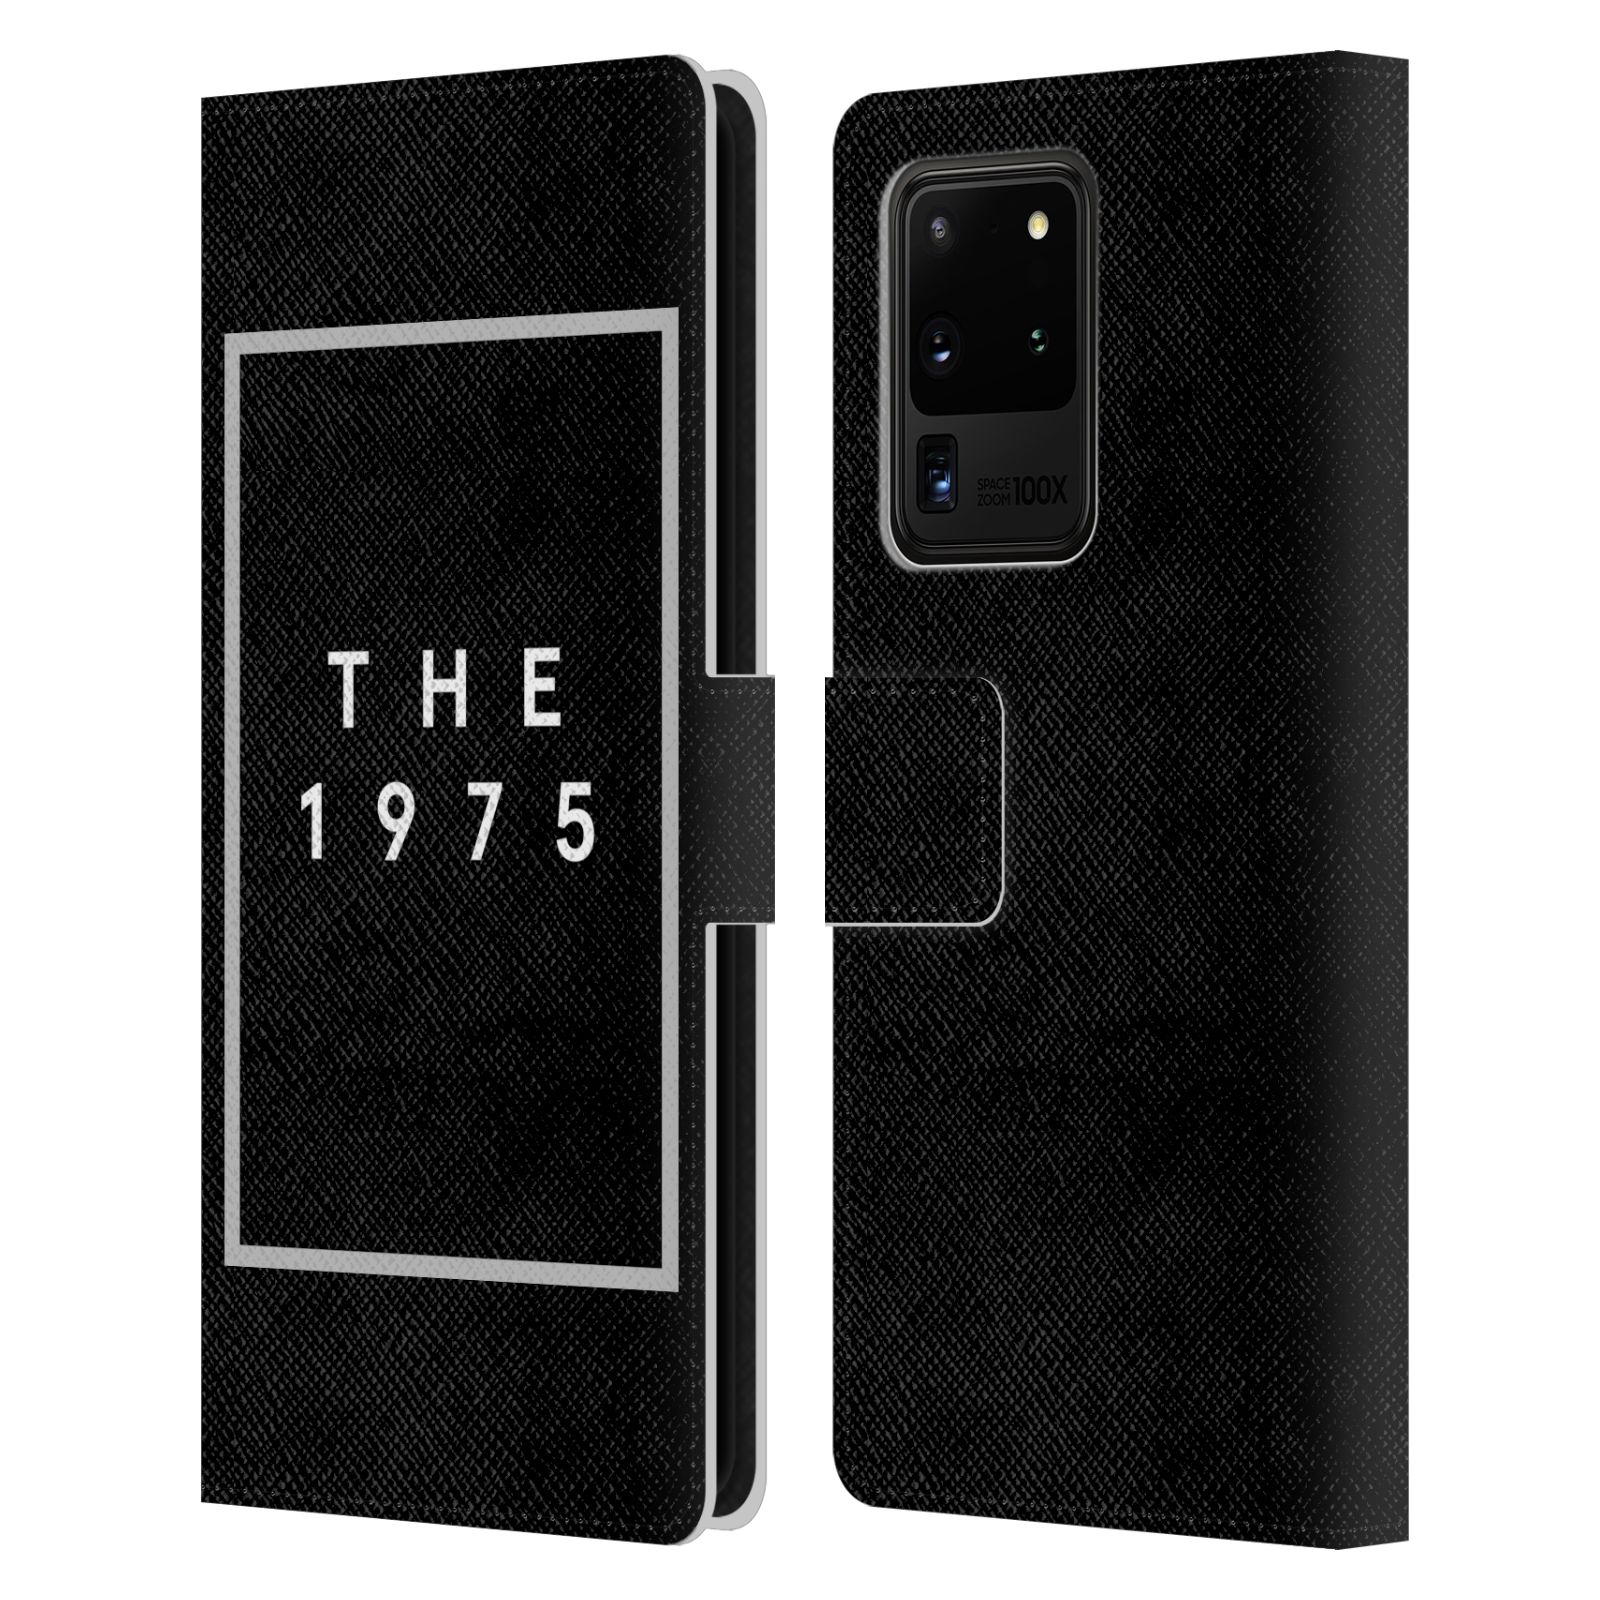 Official The 1975 Key Art Logo Black Leather Book Wallet Case For Samsung Galaxy S20 Ultra 5G